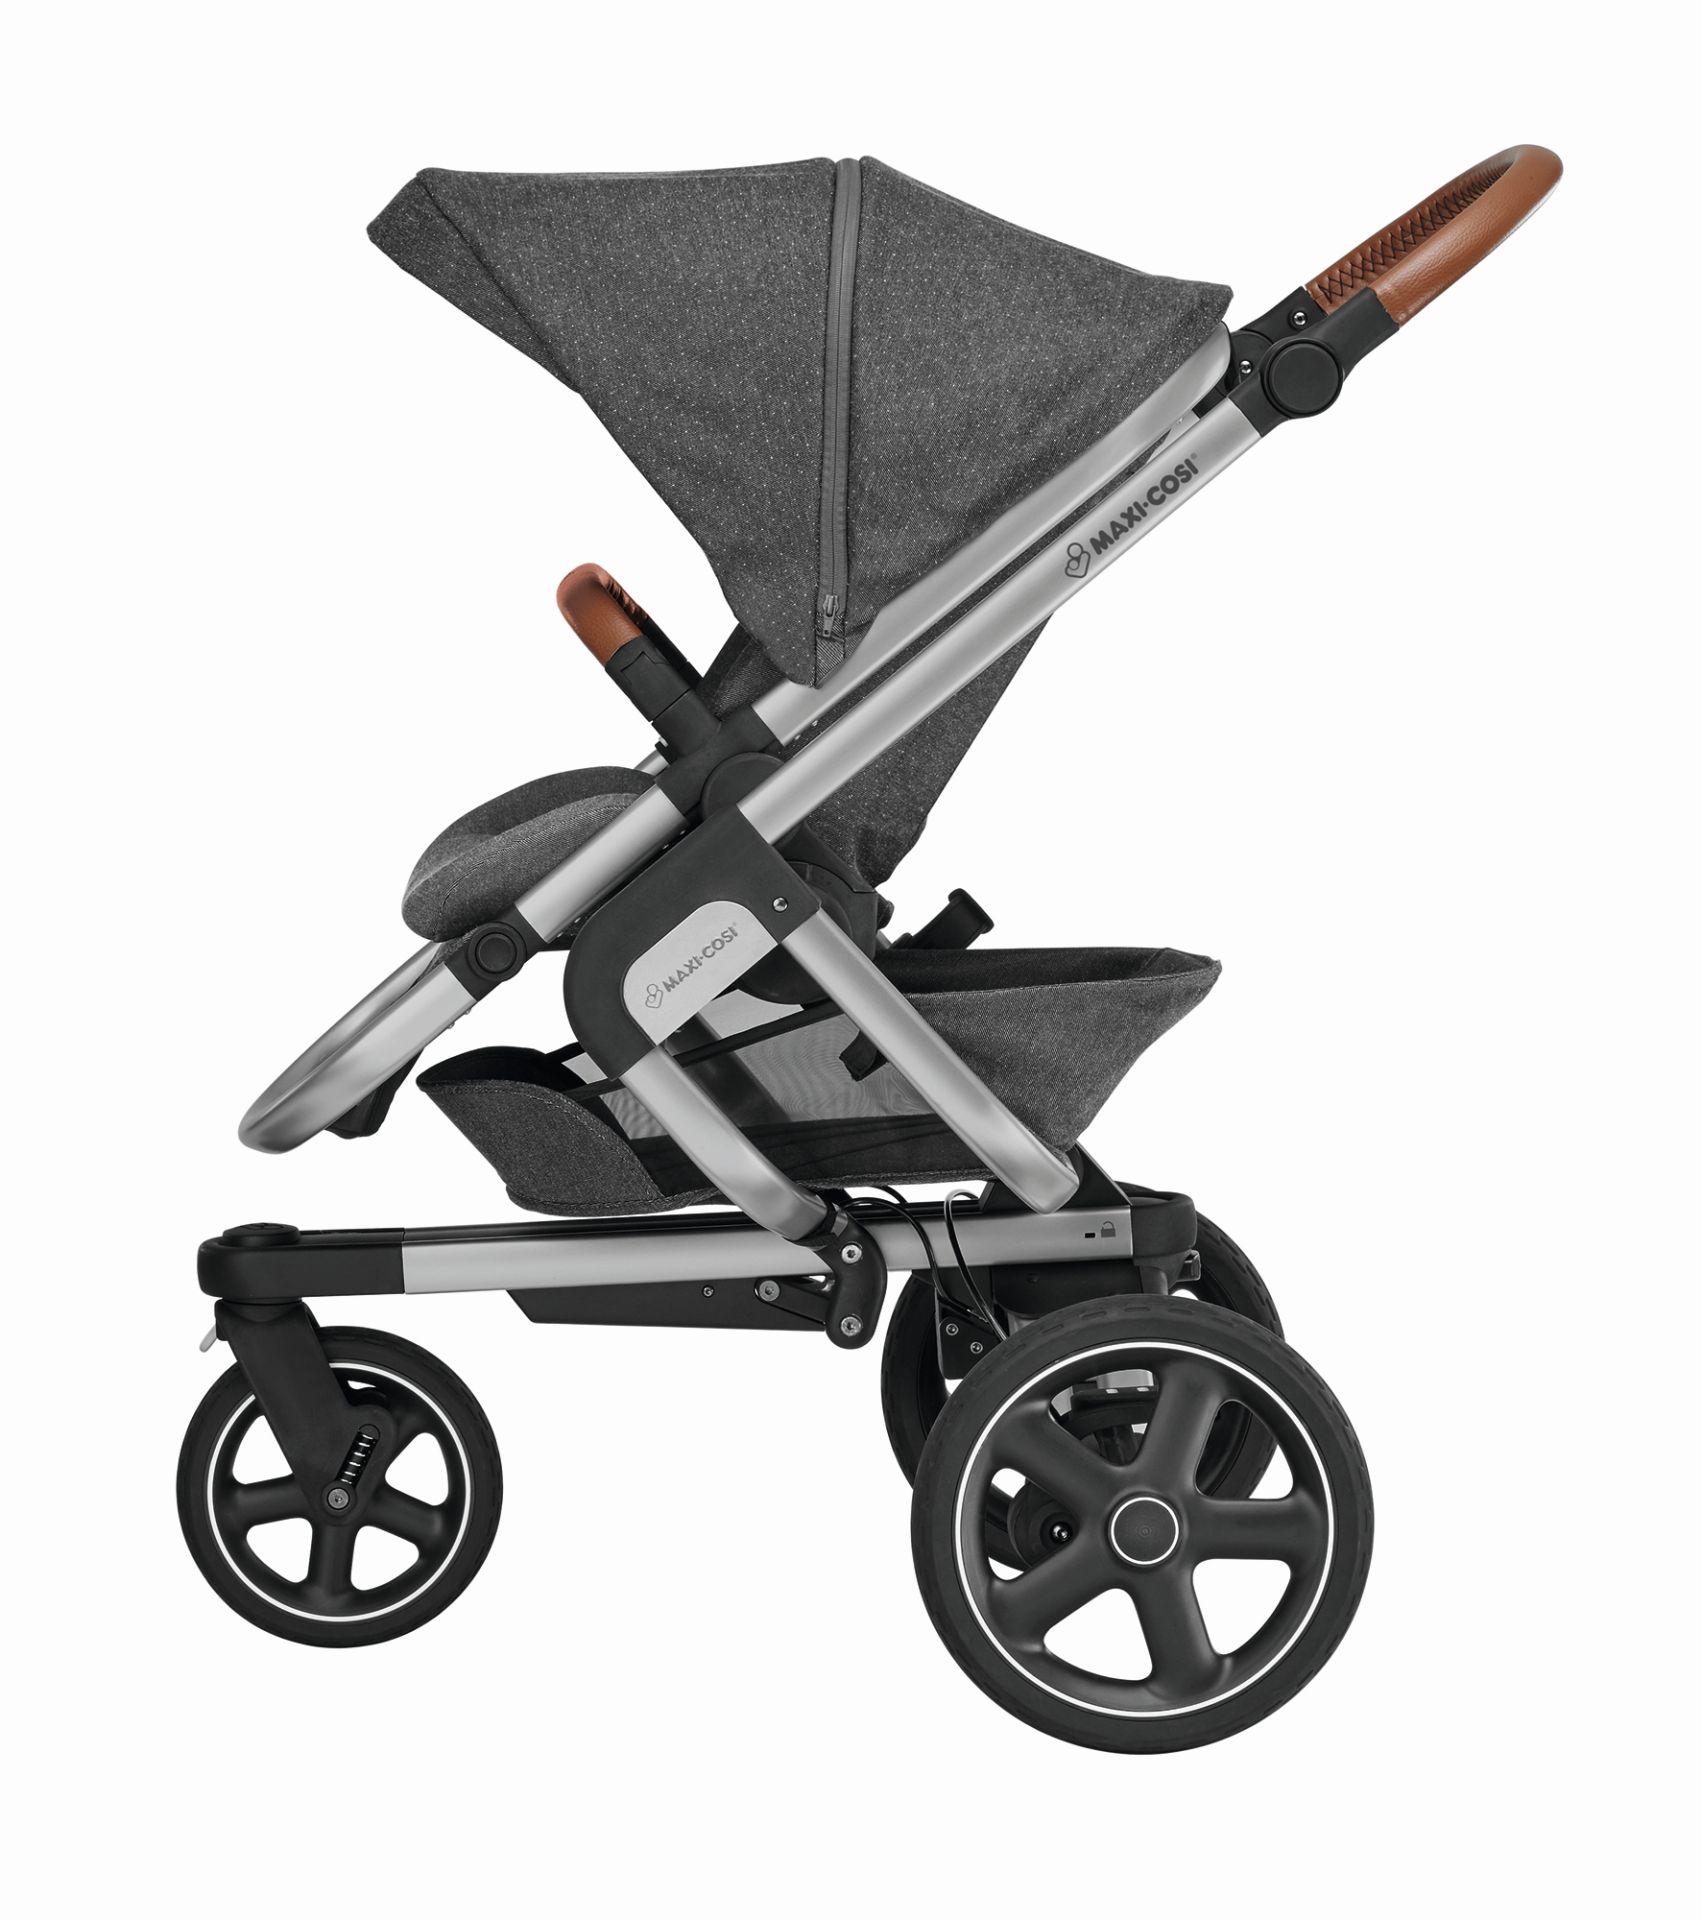 maxi cosi kinderwagen nova 3 rad buy at kidsroom strollers. Black Bedroom Furniture Sets. Home Design Ideas